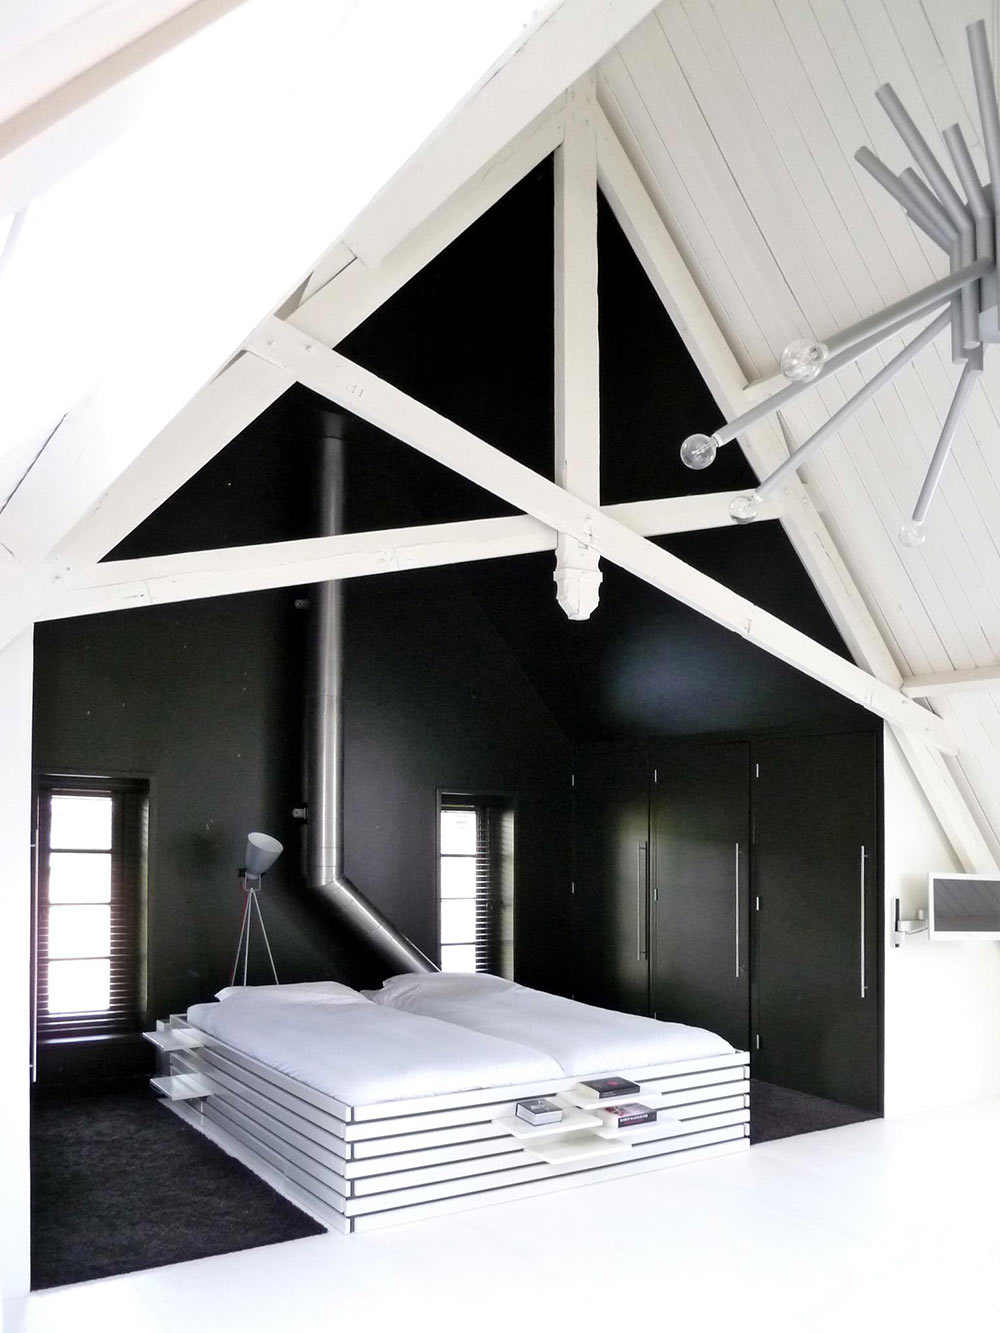 Dark Bedroom, White Wooden Bed, Unique Loft Conversion in The Netherlands